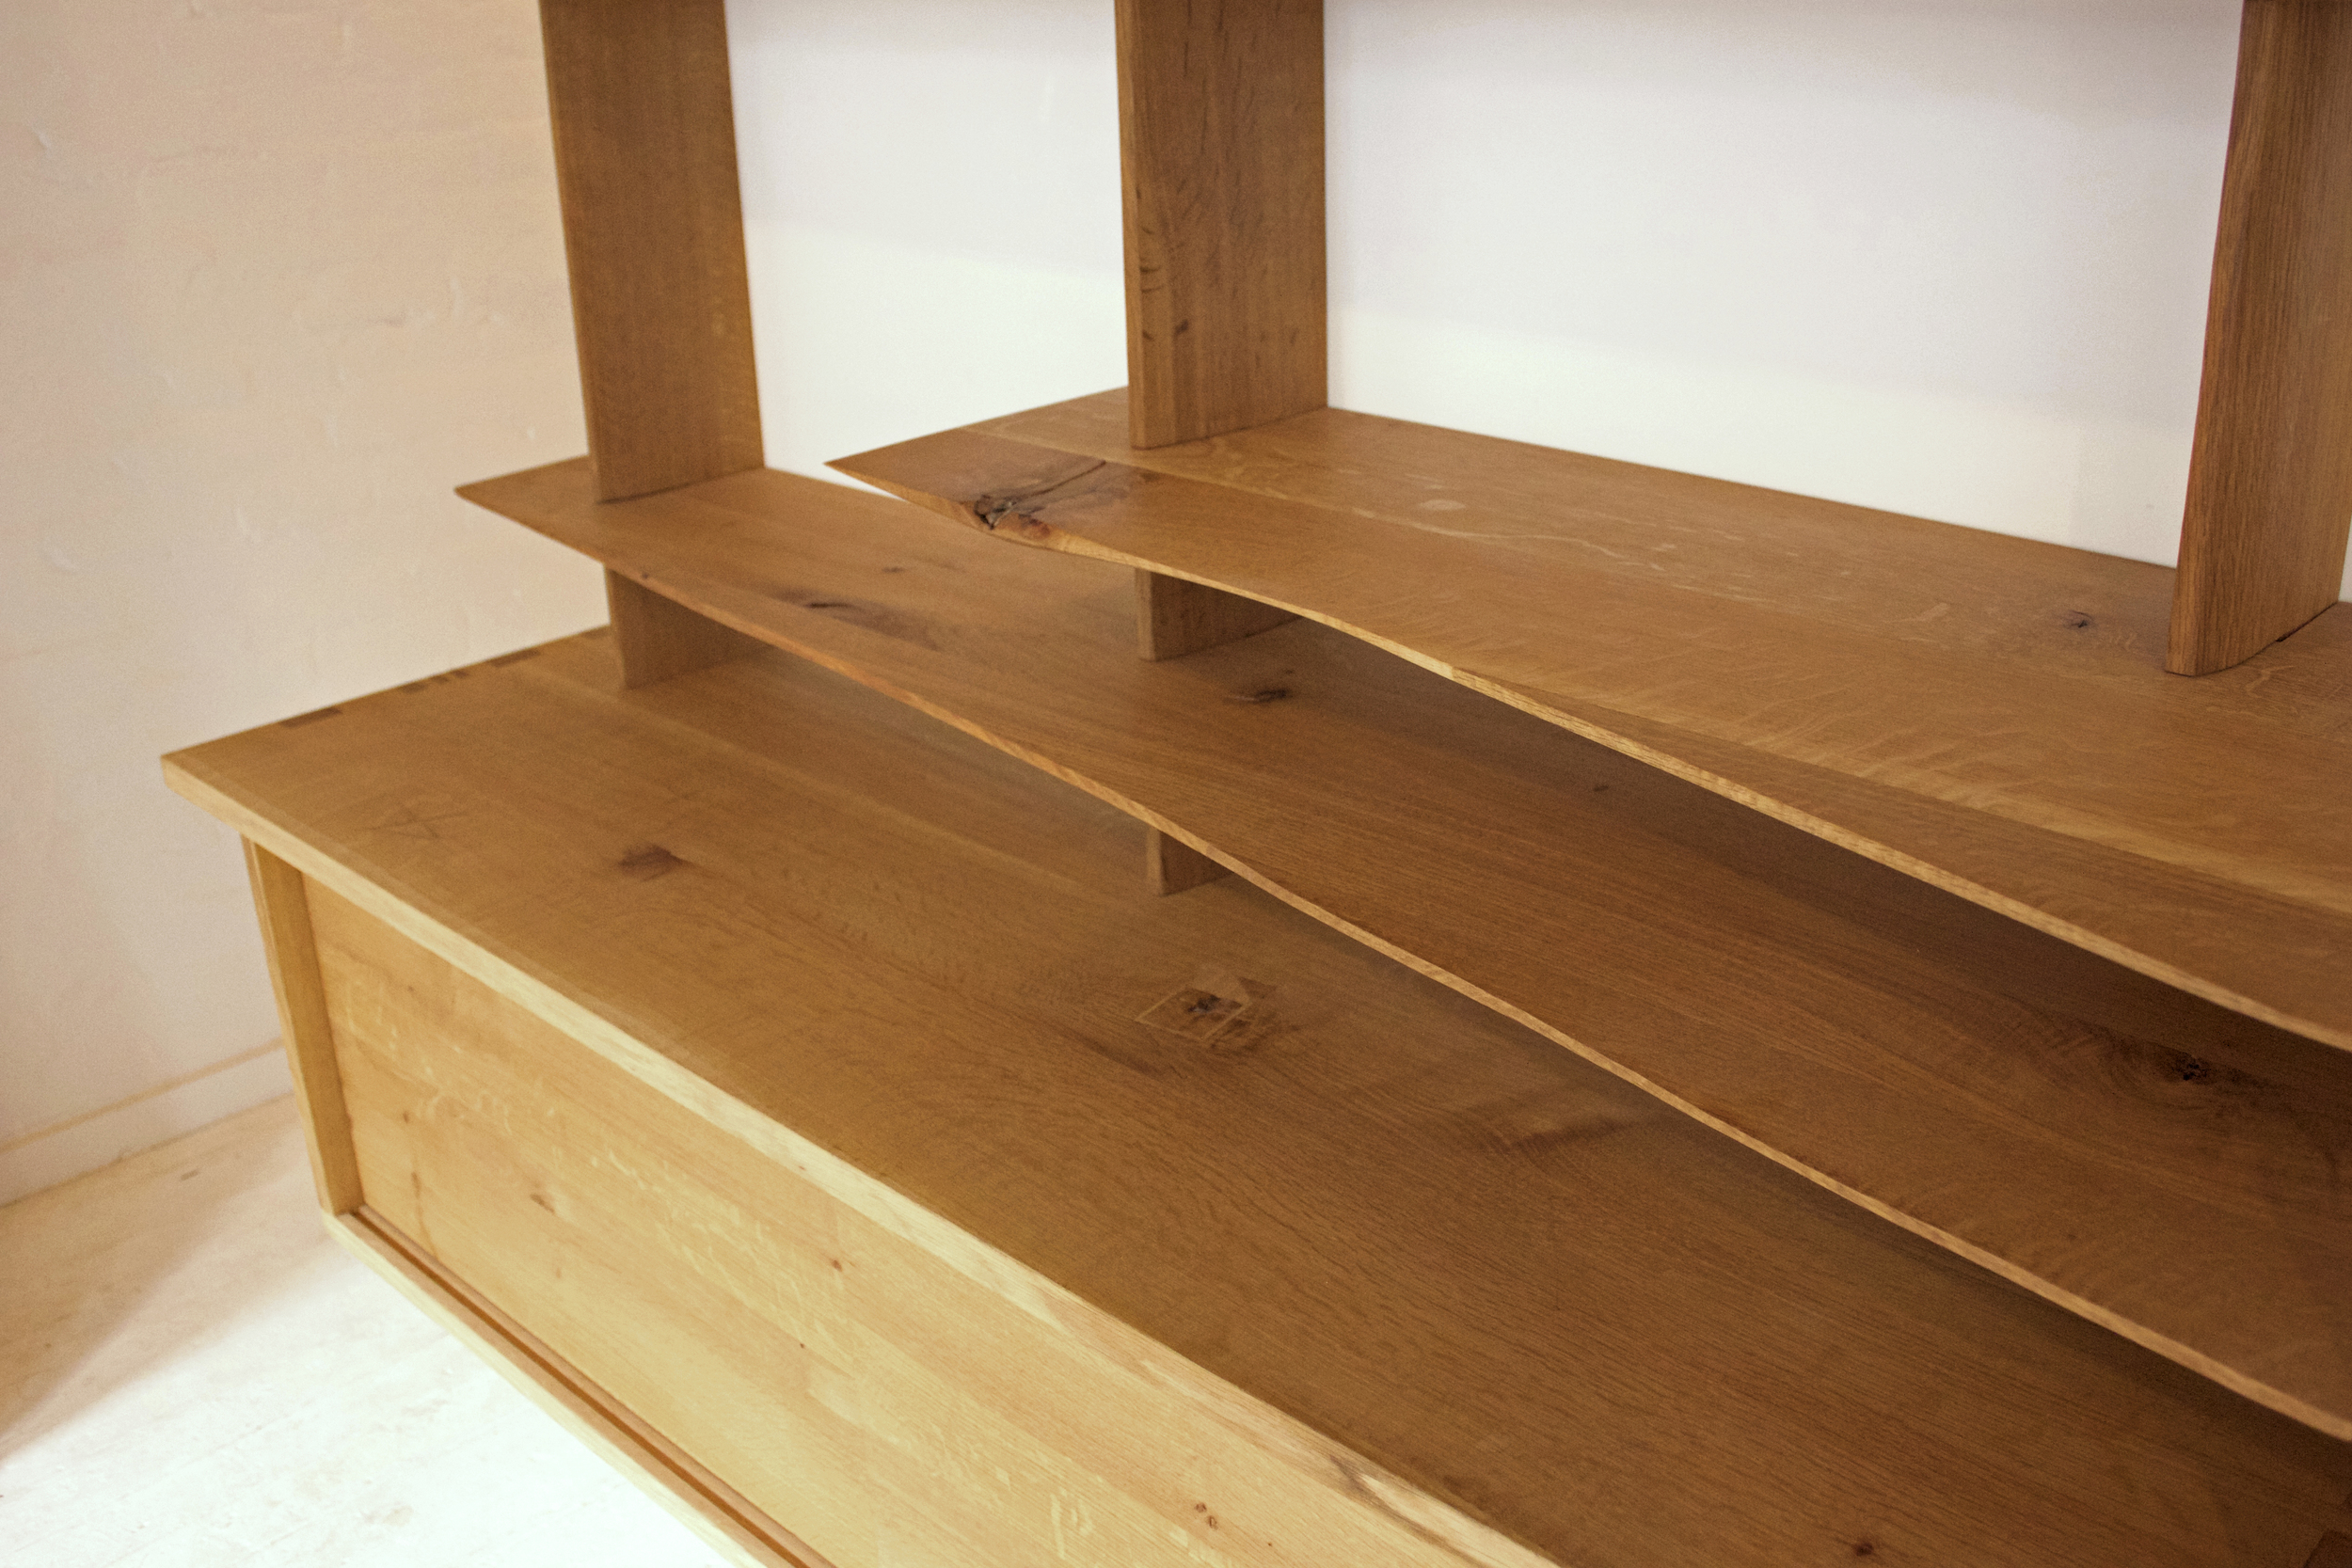 bespoke shelving for private residence